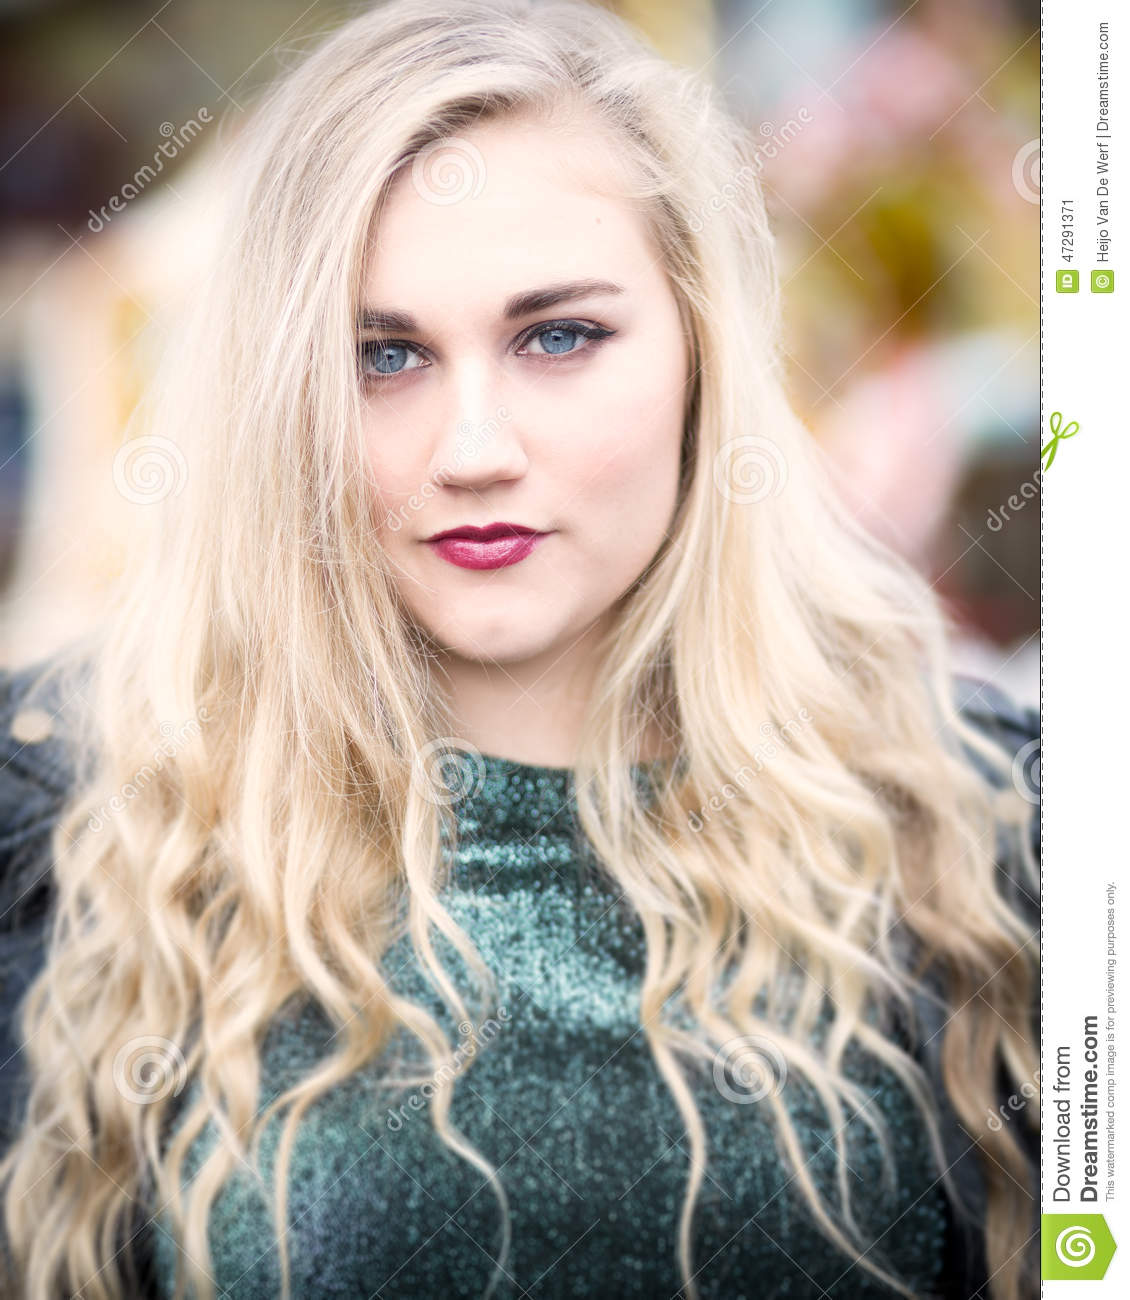 eye green teen blonde